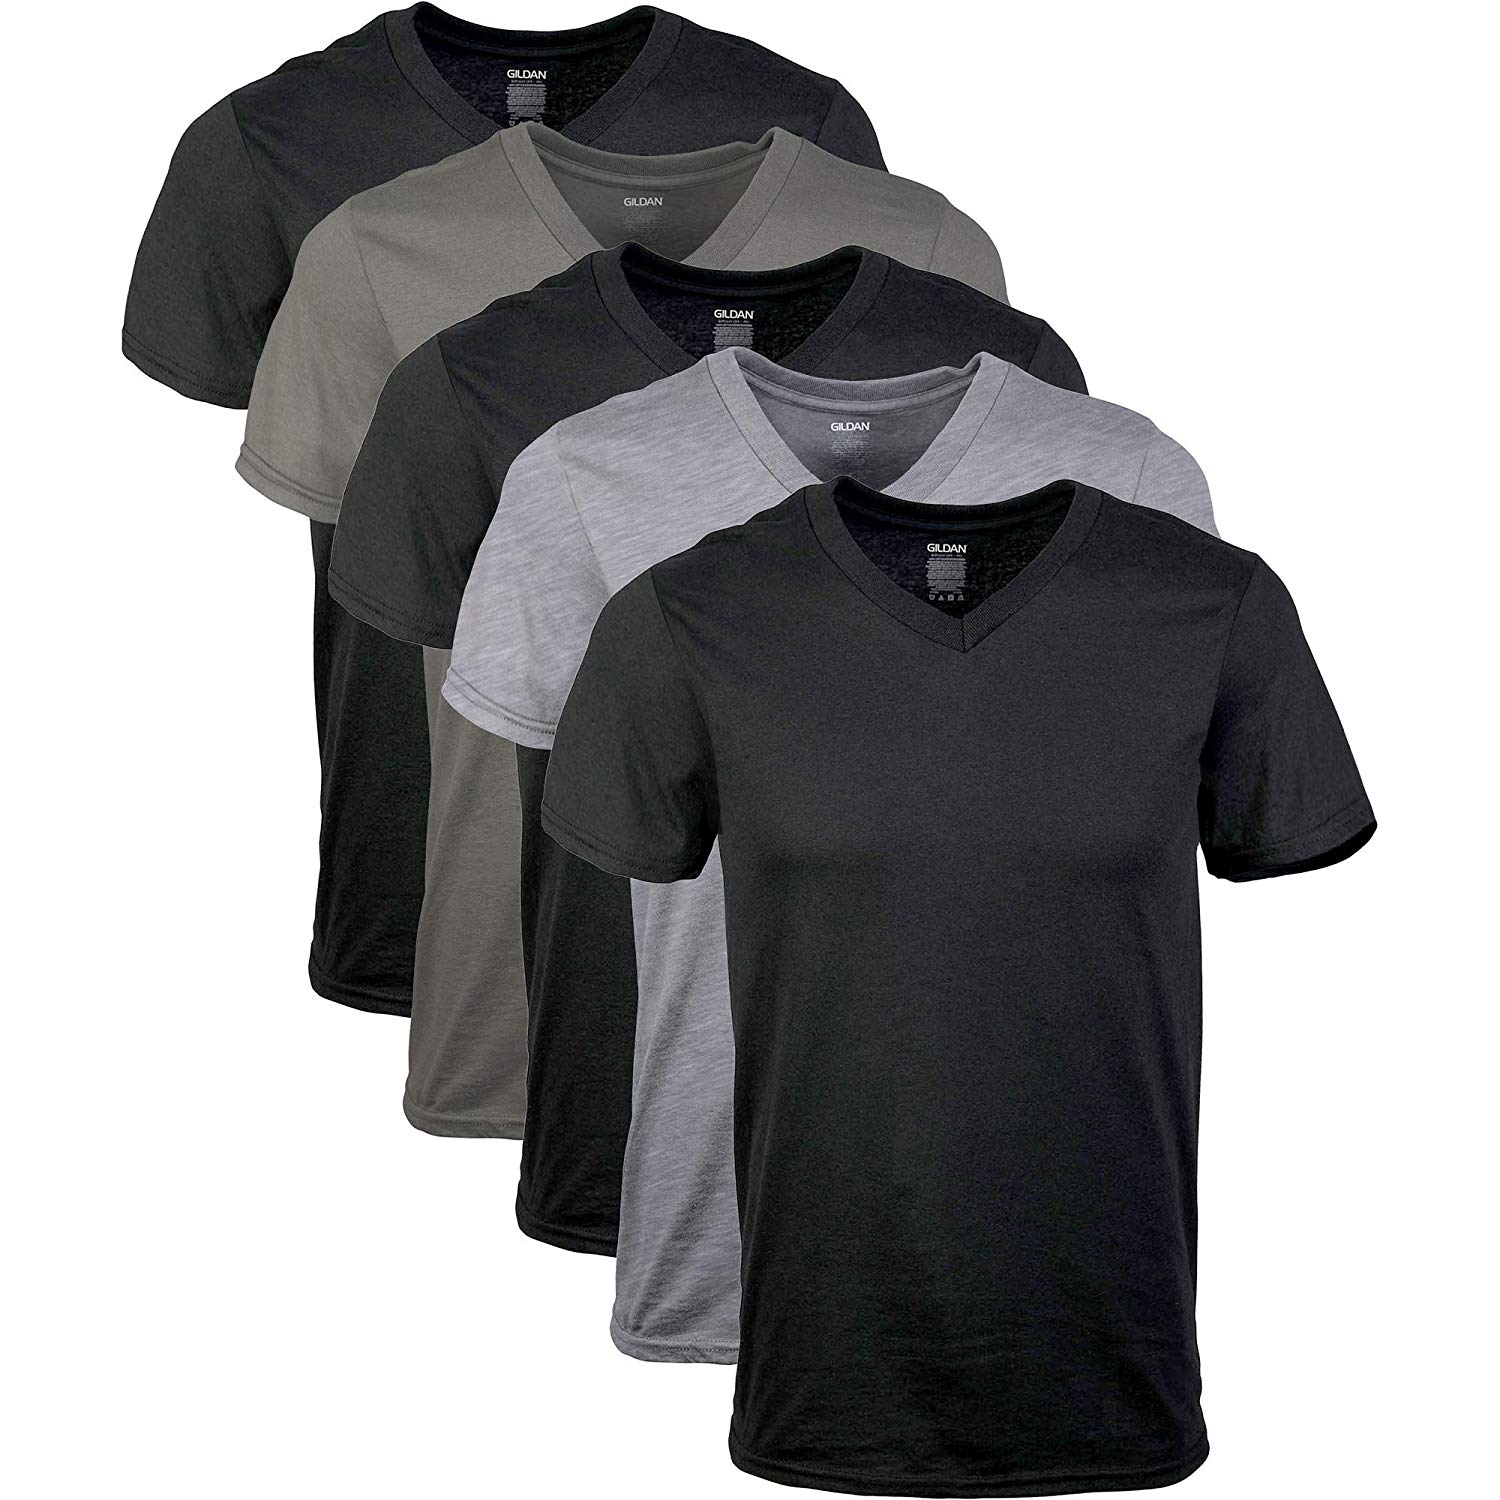 Men's Assorted V-Neck T-Shirts Multipack Casual  Cotton  O-Neck